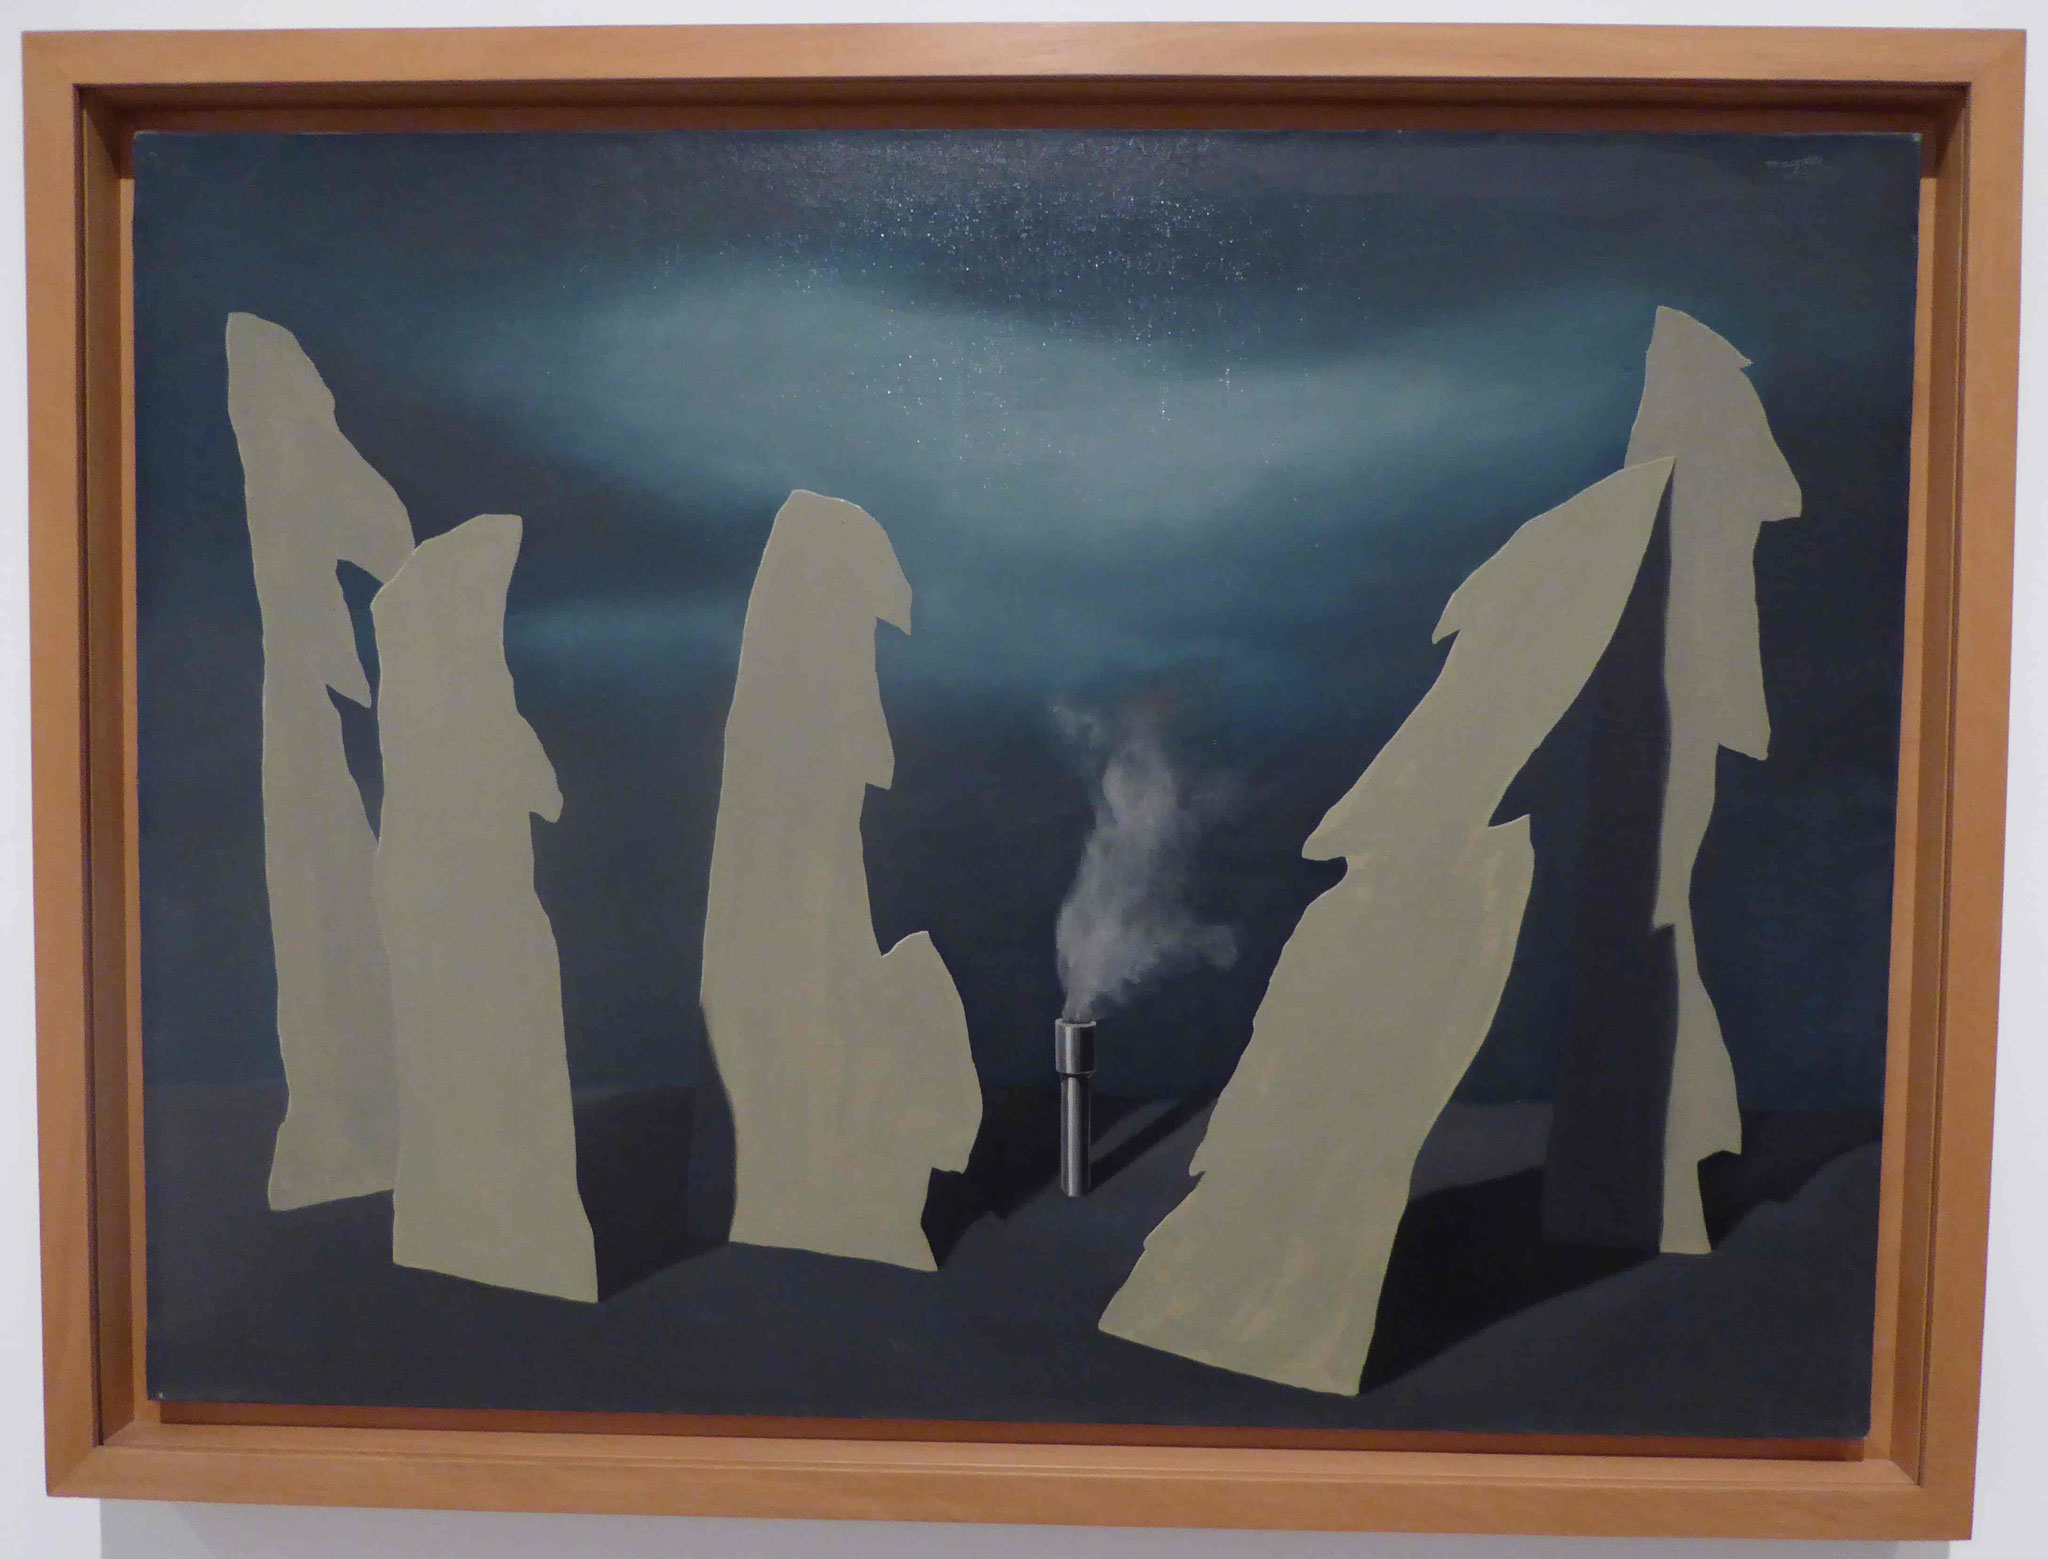 René Magritte, Museo Reina Sofia, Madrid, Spanien